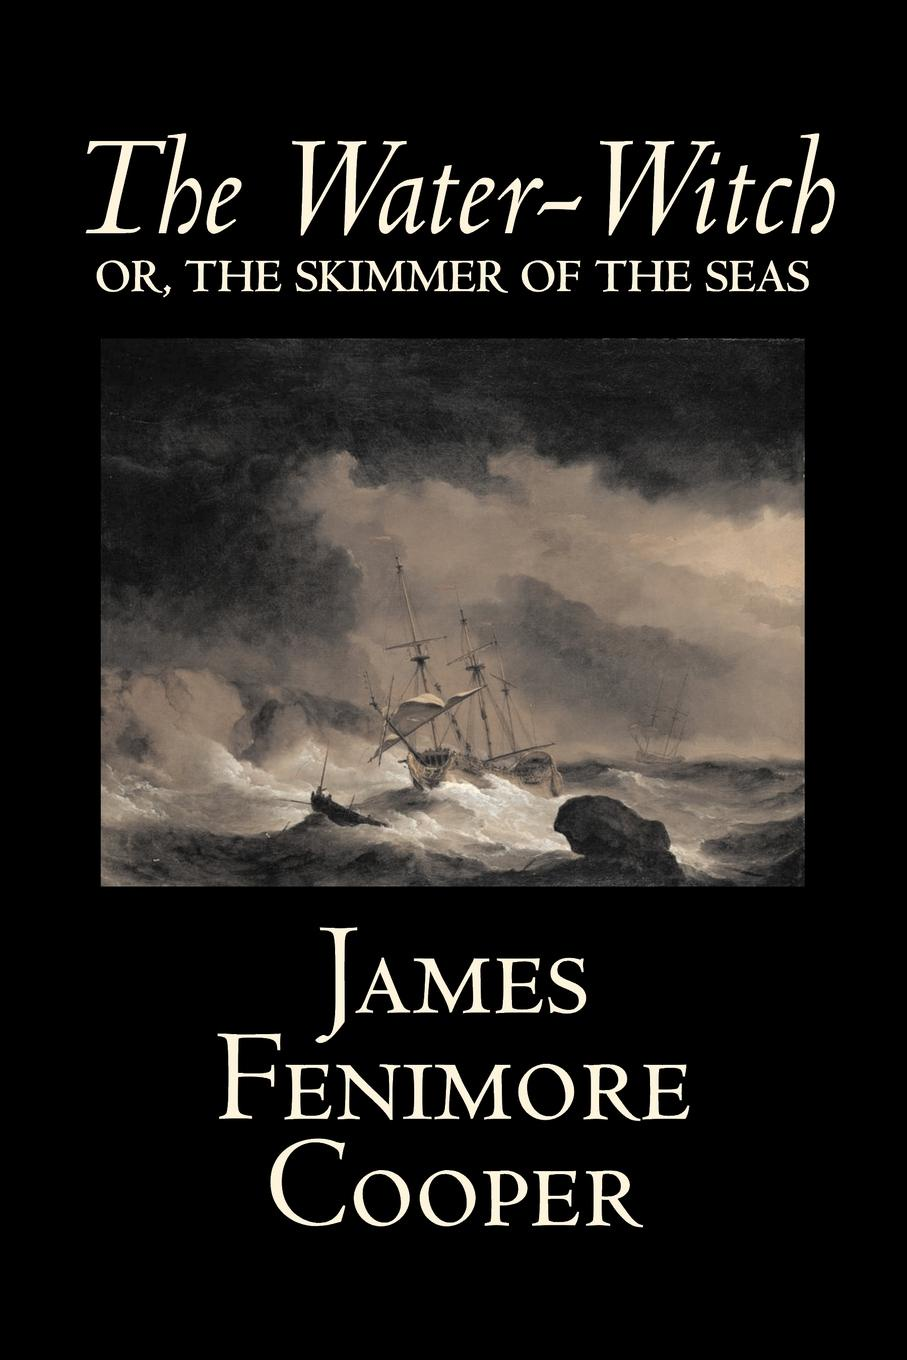 James Fenimore Cooper The Water-Witch by James Fenimore Cooper, Fiction, Classics, Historical, Fantasy the water witch